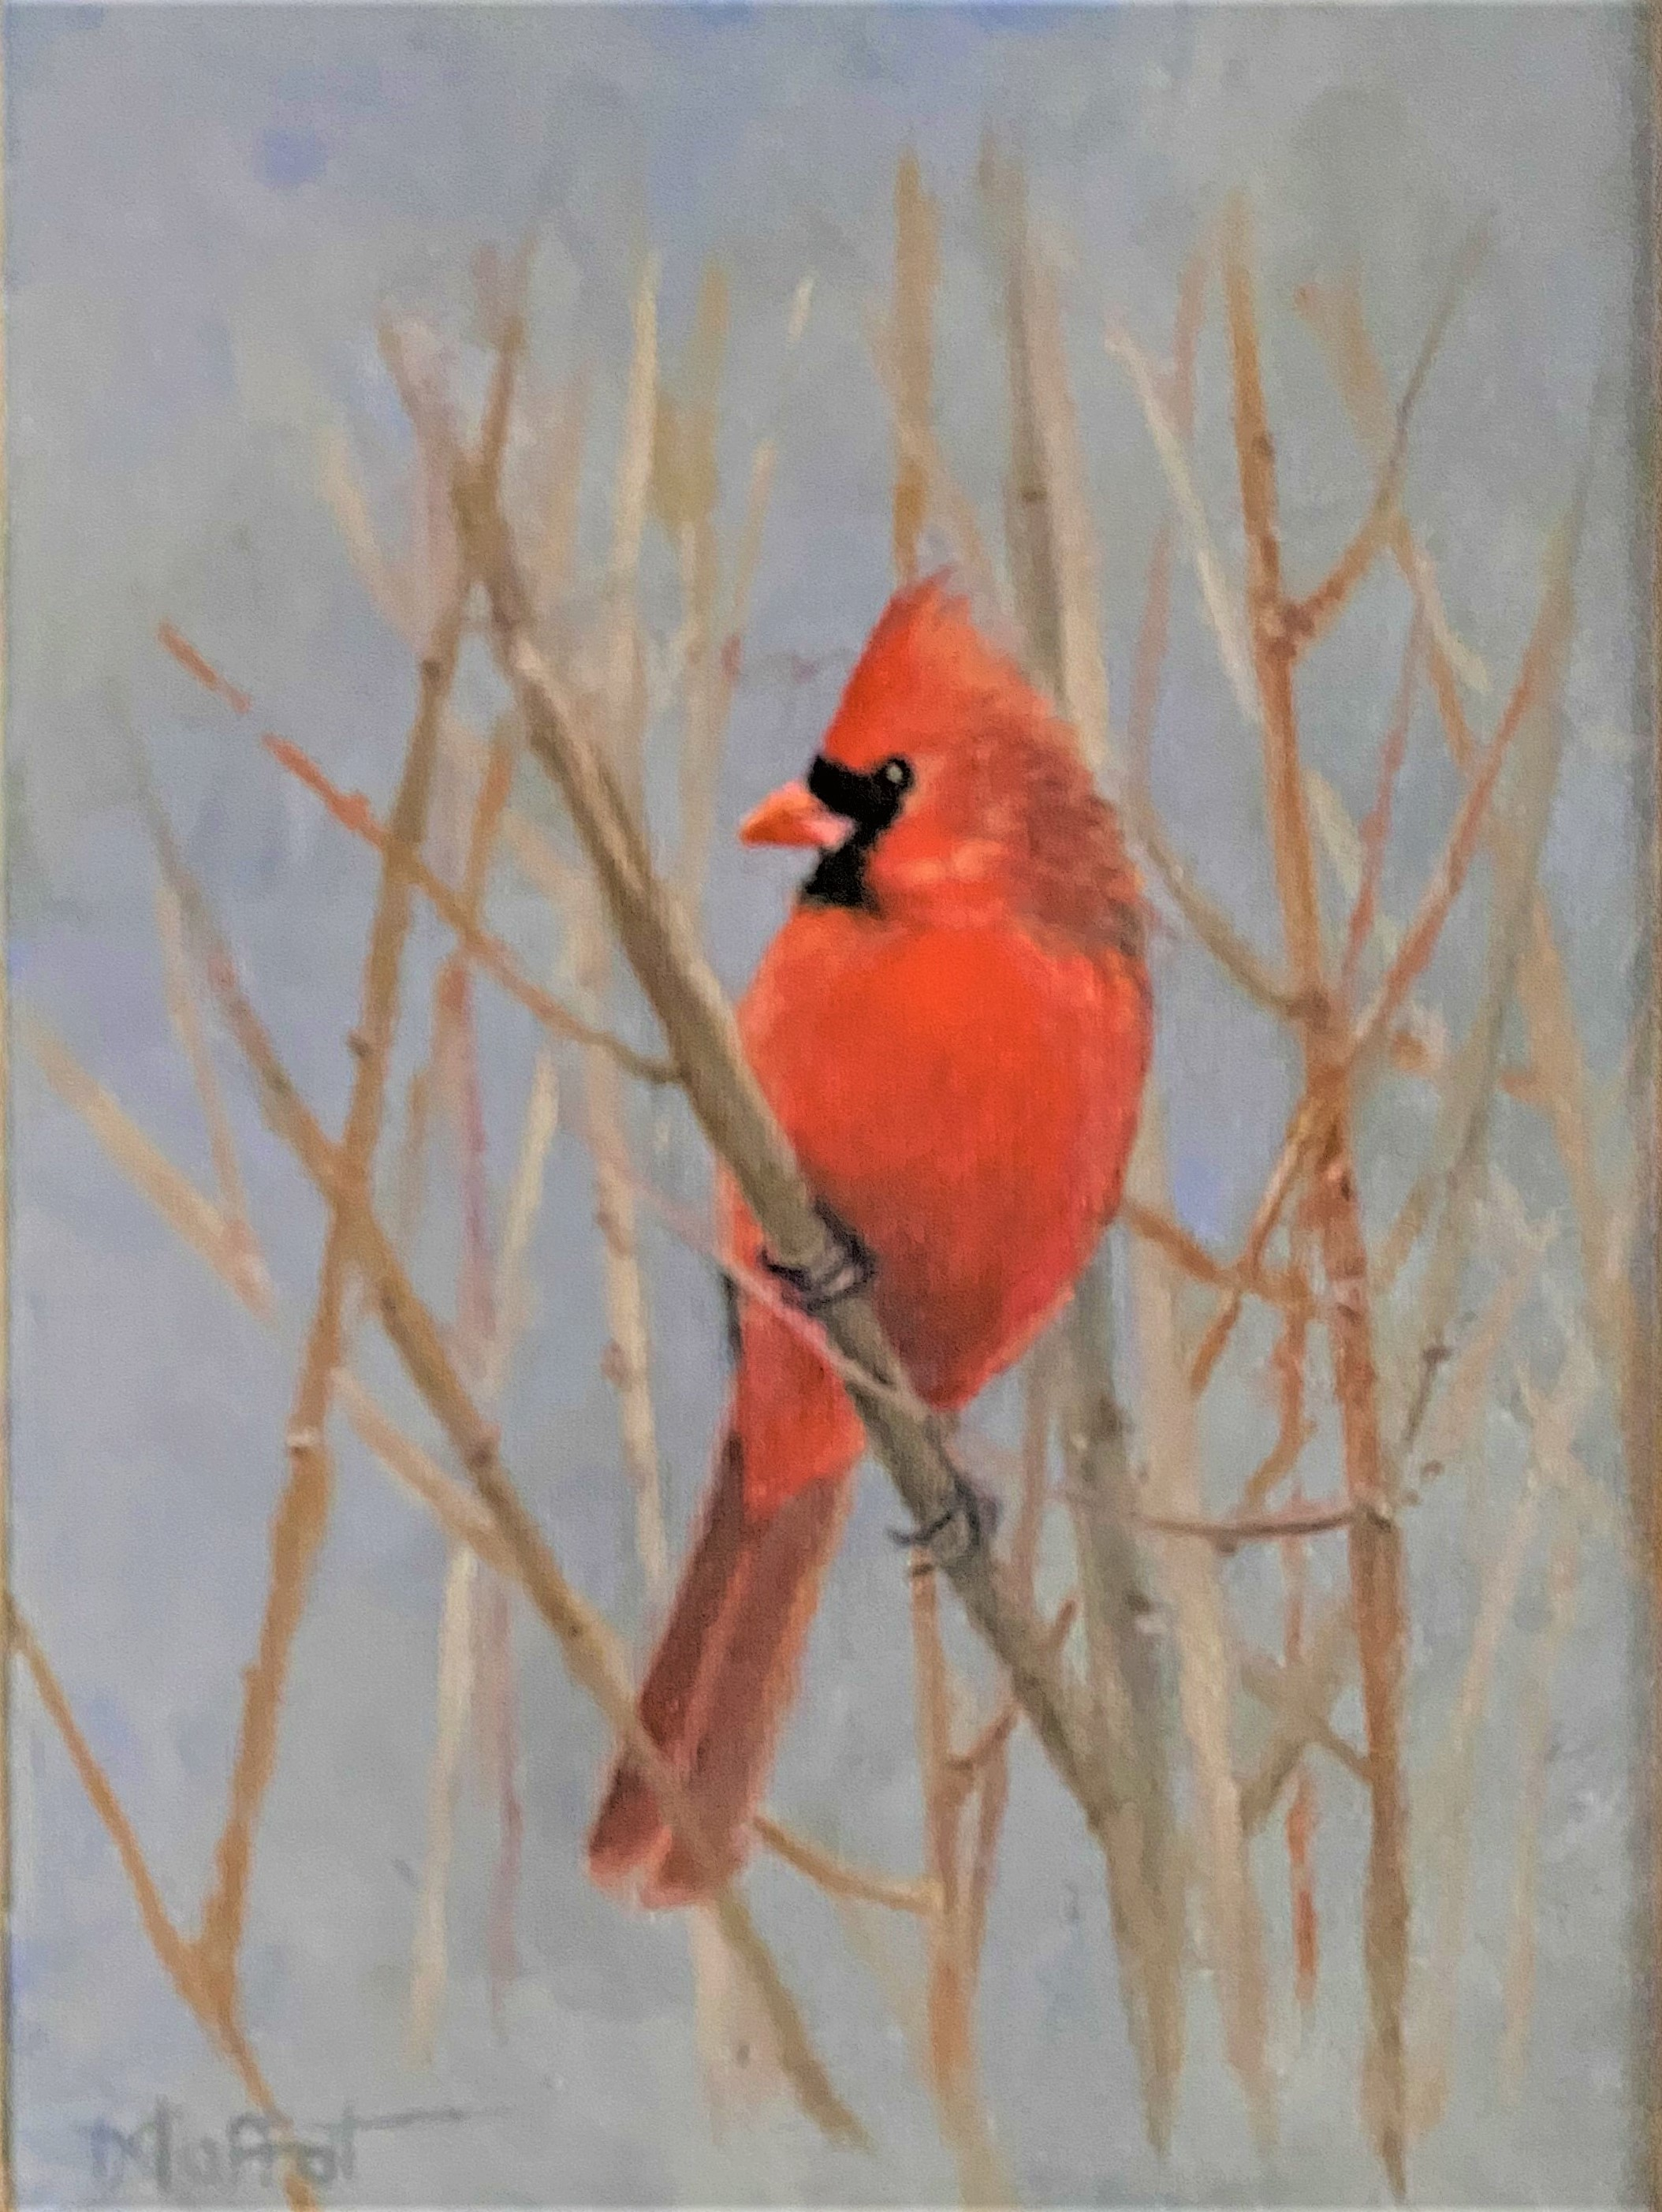 Moffat_Sarita_Mr Cardinal 2_Oil_6x8